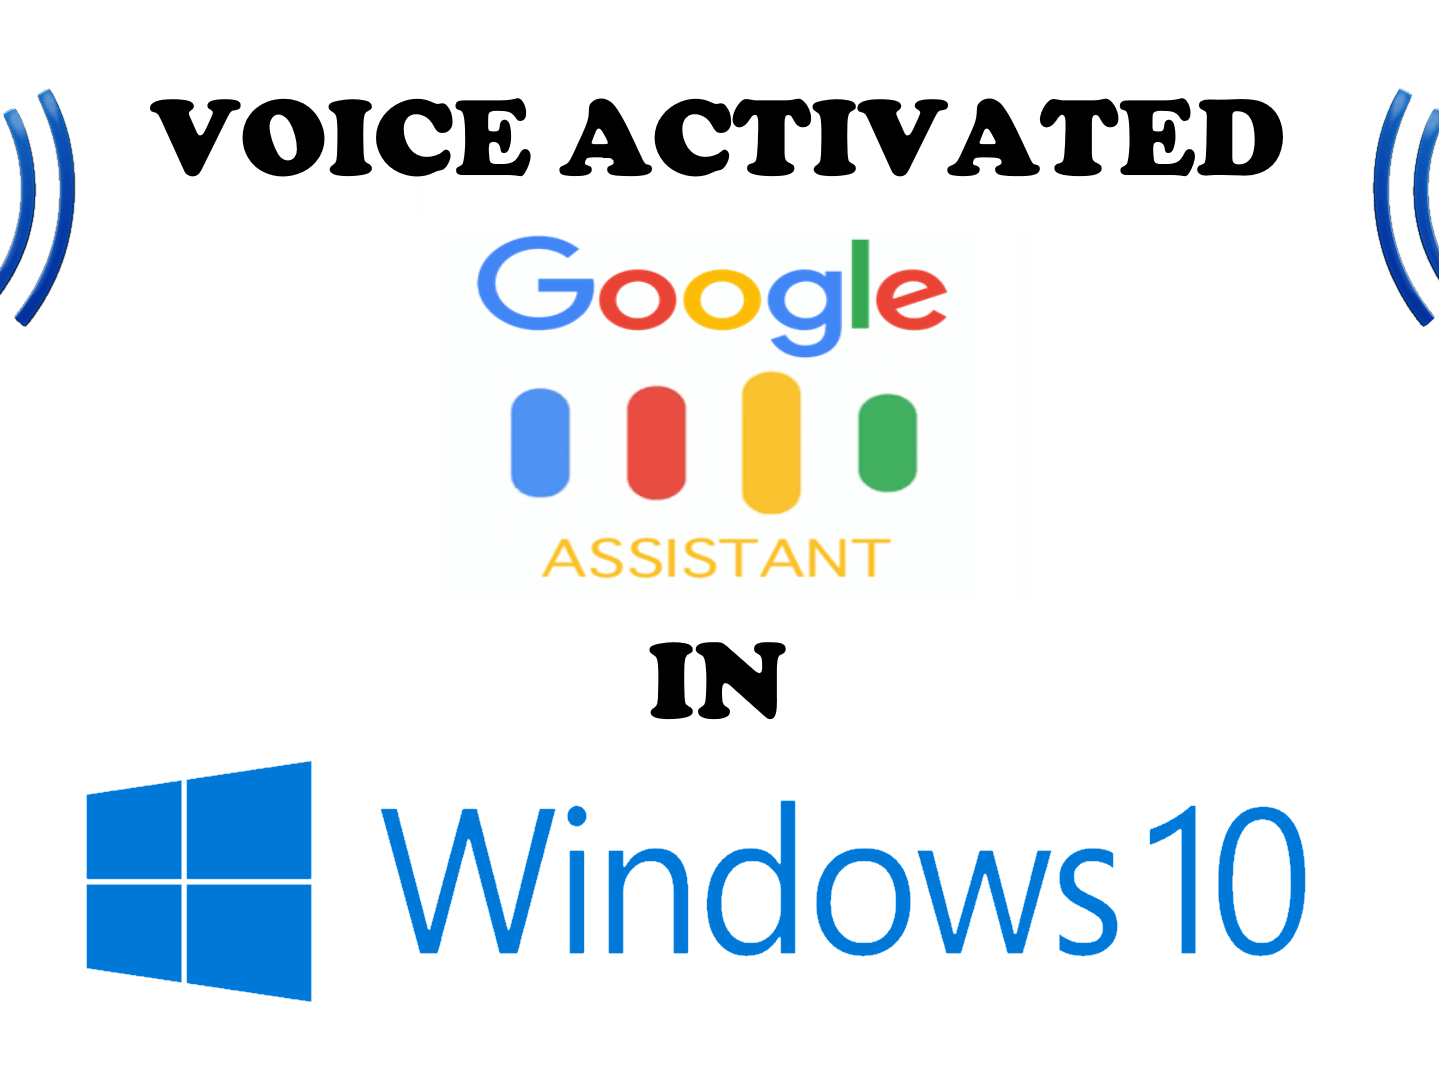 How to Run Voice Activated Google Assistant on Windows 10 PC